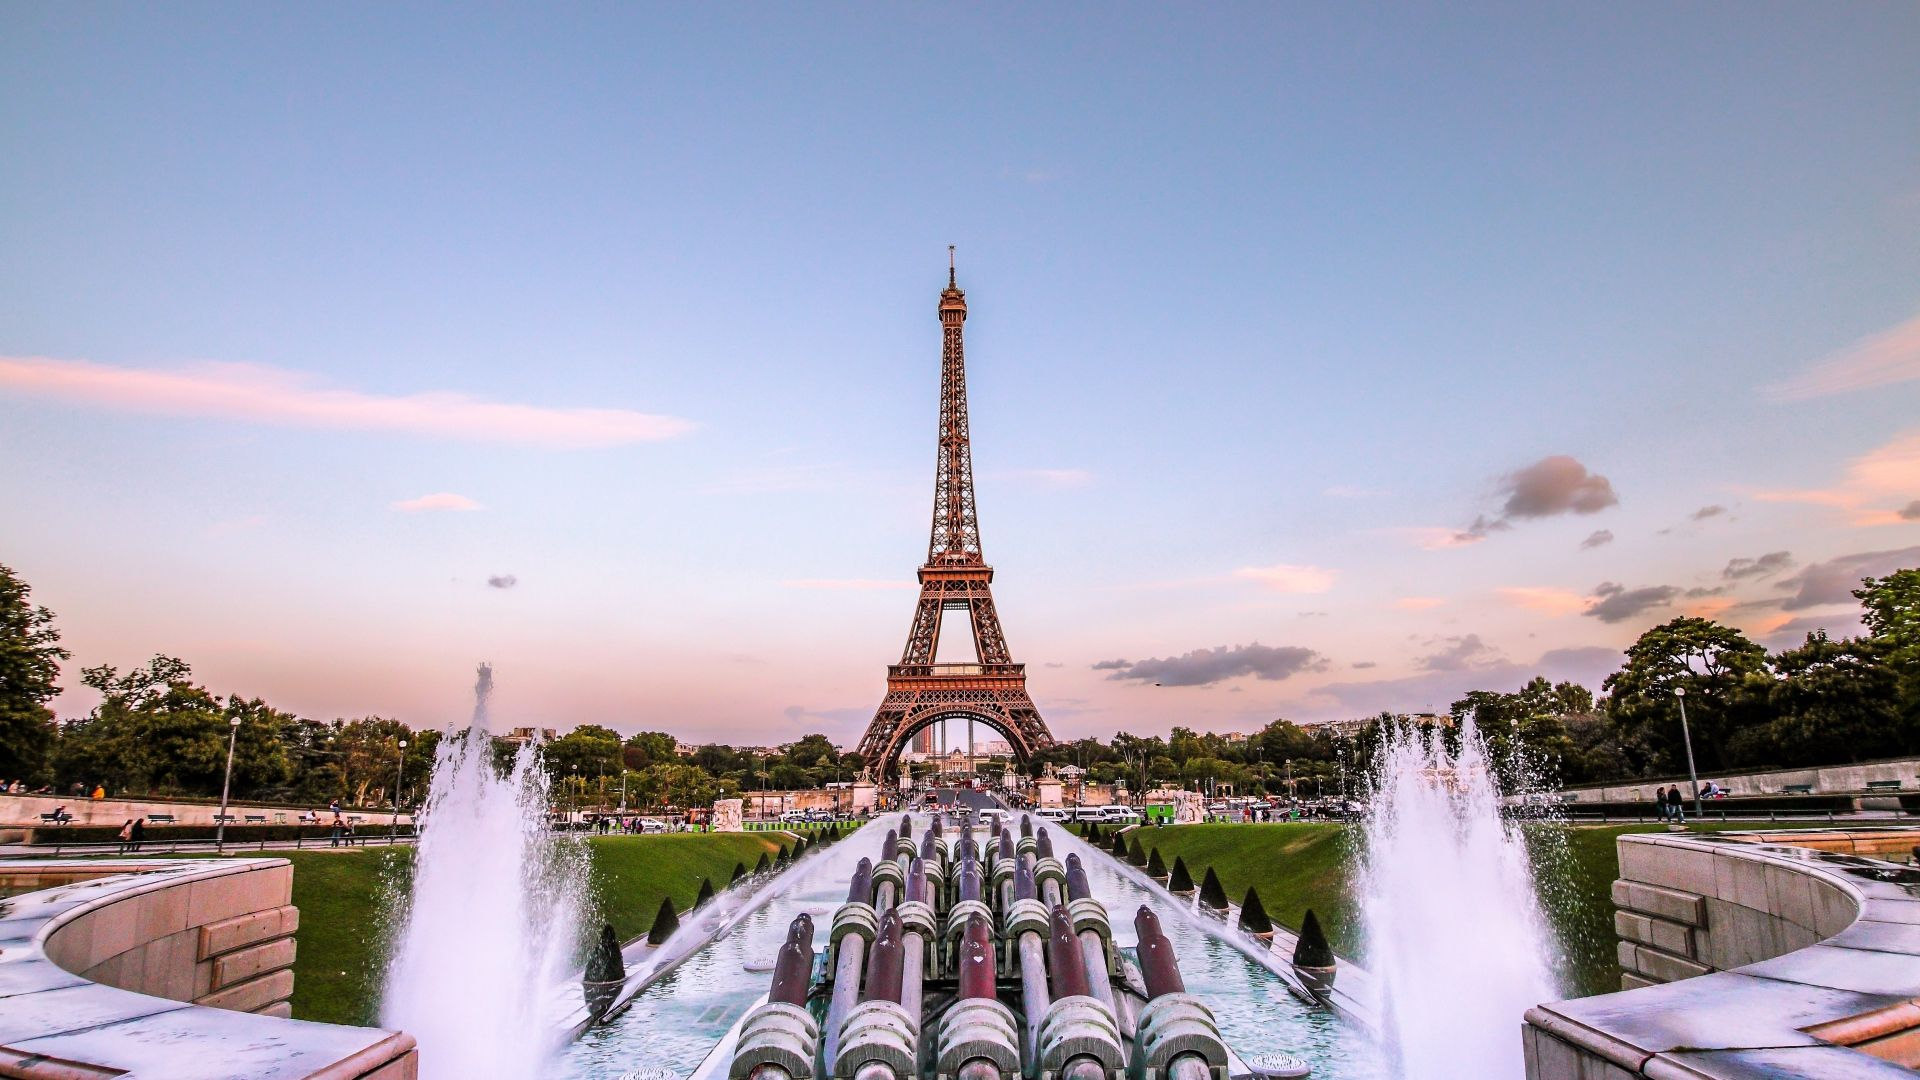 Eiffel Tower Vintage Wallpapers For Android In 2020 Eiffel Tower Pictures Eiffel Tower France Wallpaper